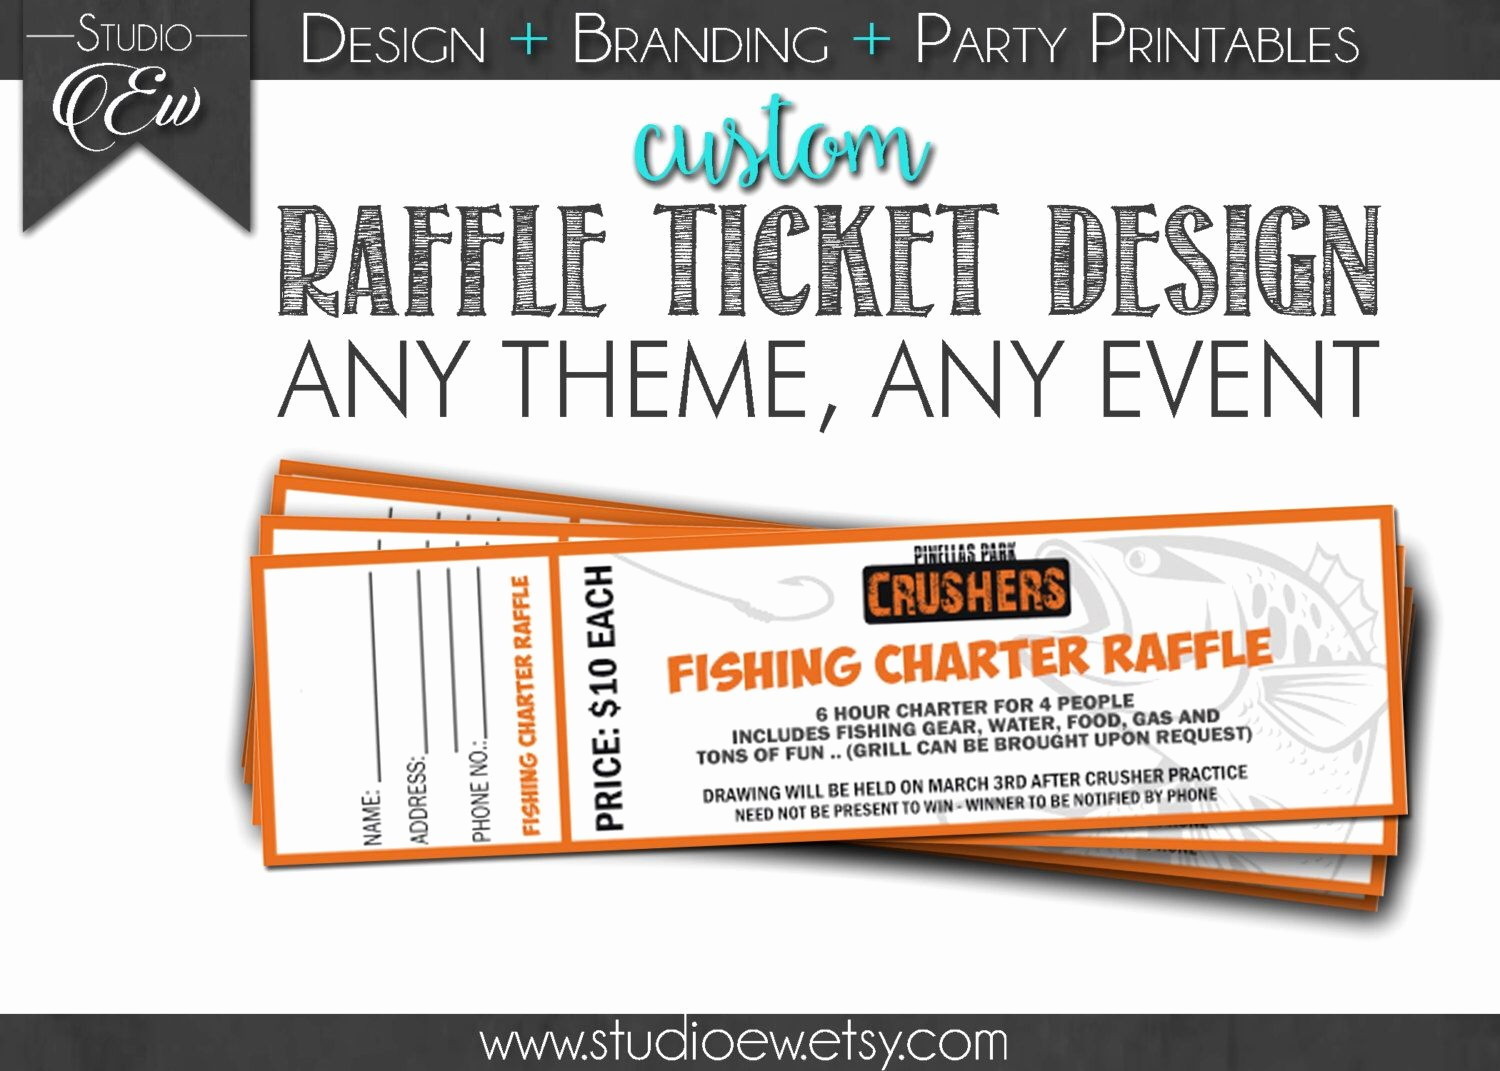 Raffle Ticket Samples for Fundraisers Inspirational Custom Raffle Ticket Design Any event Any theme